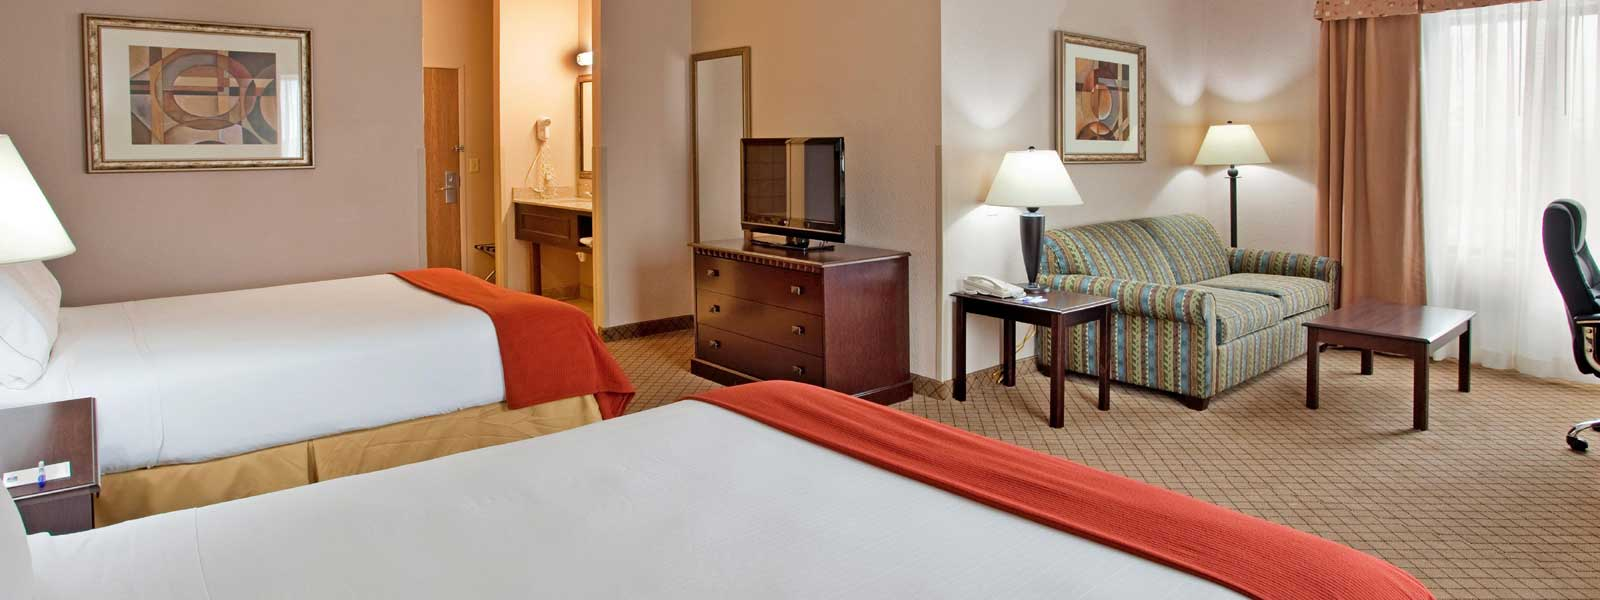 Holiday Inn Express & Suites Liberty Affordable Lodging in Kansas City Missouri Cheap Budget